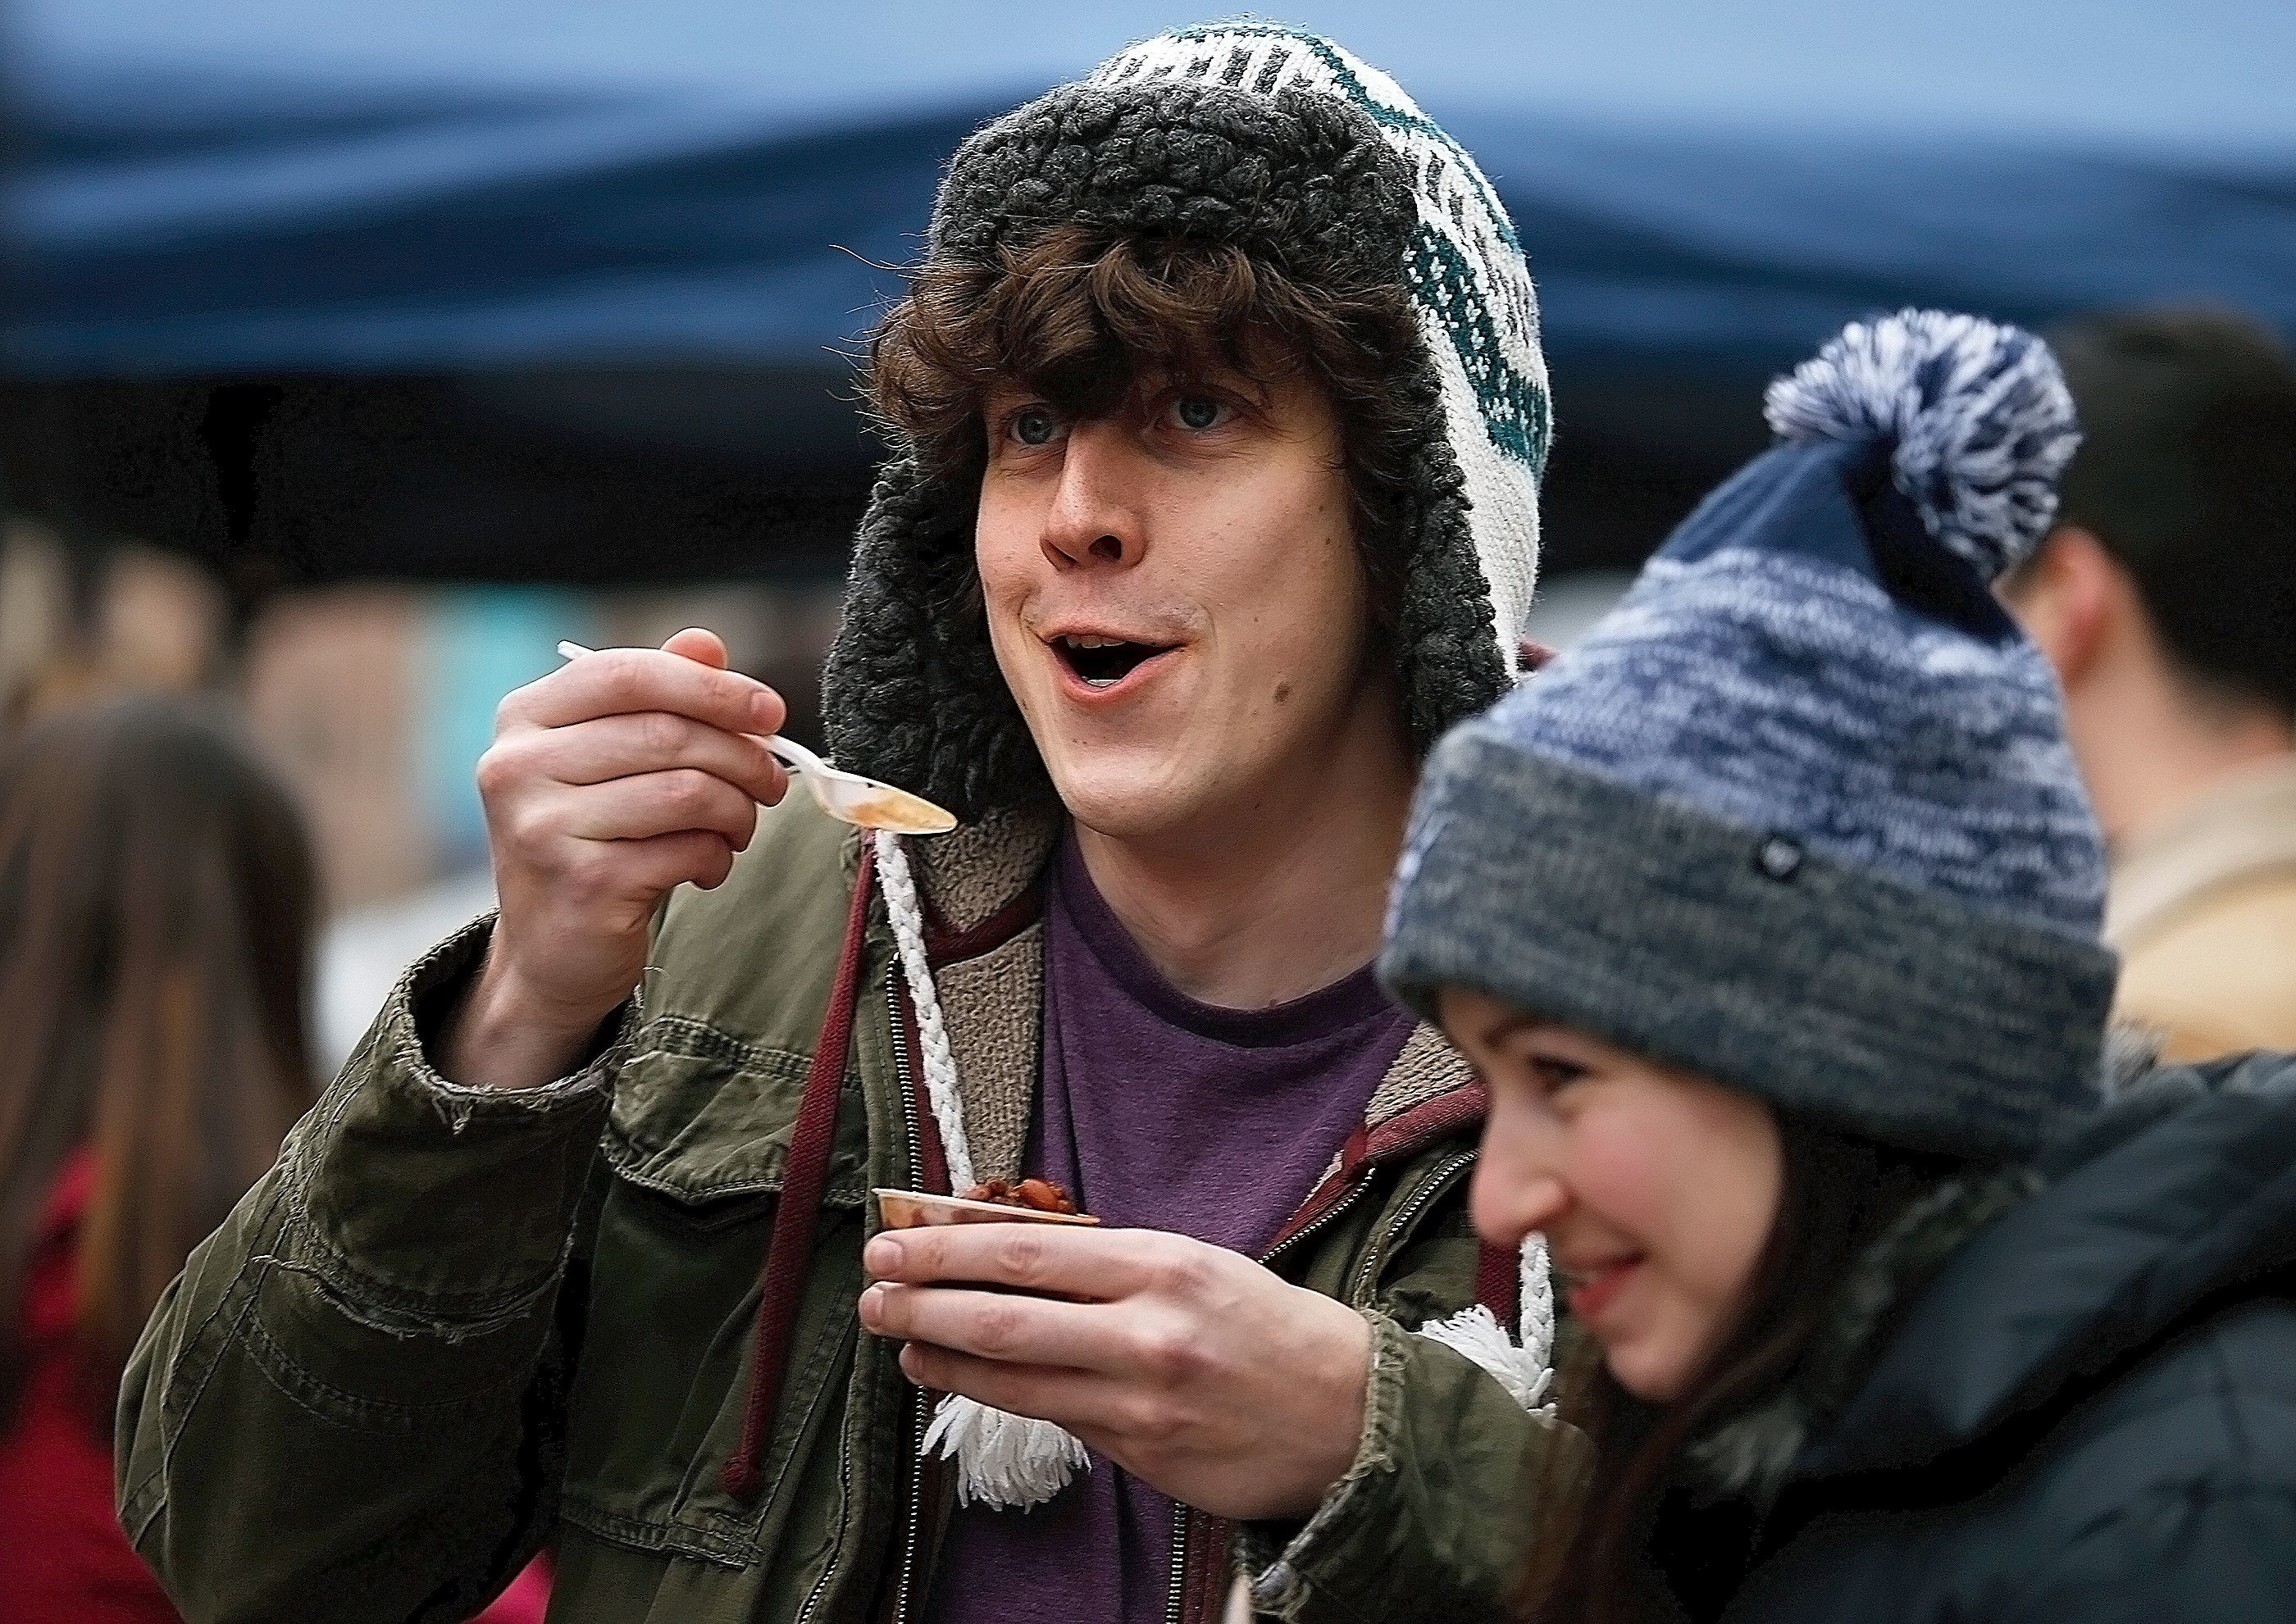 More than 40 restaurants participated in the 20th annual Downtown Ithaca Chili Cook-off on Feb. 10, 2018.